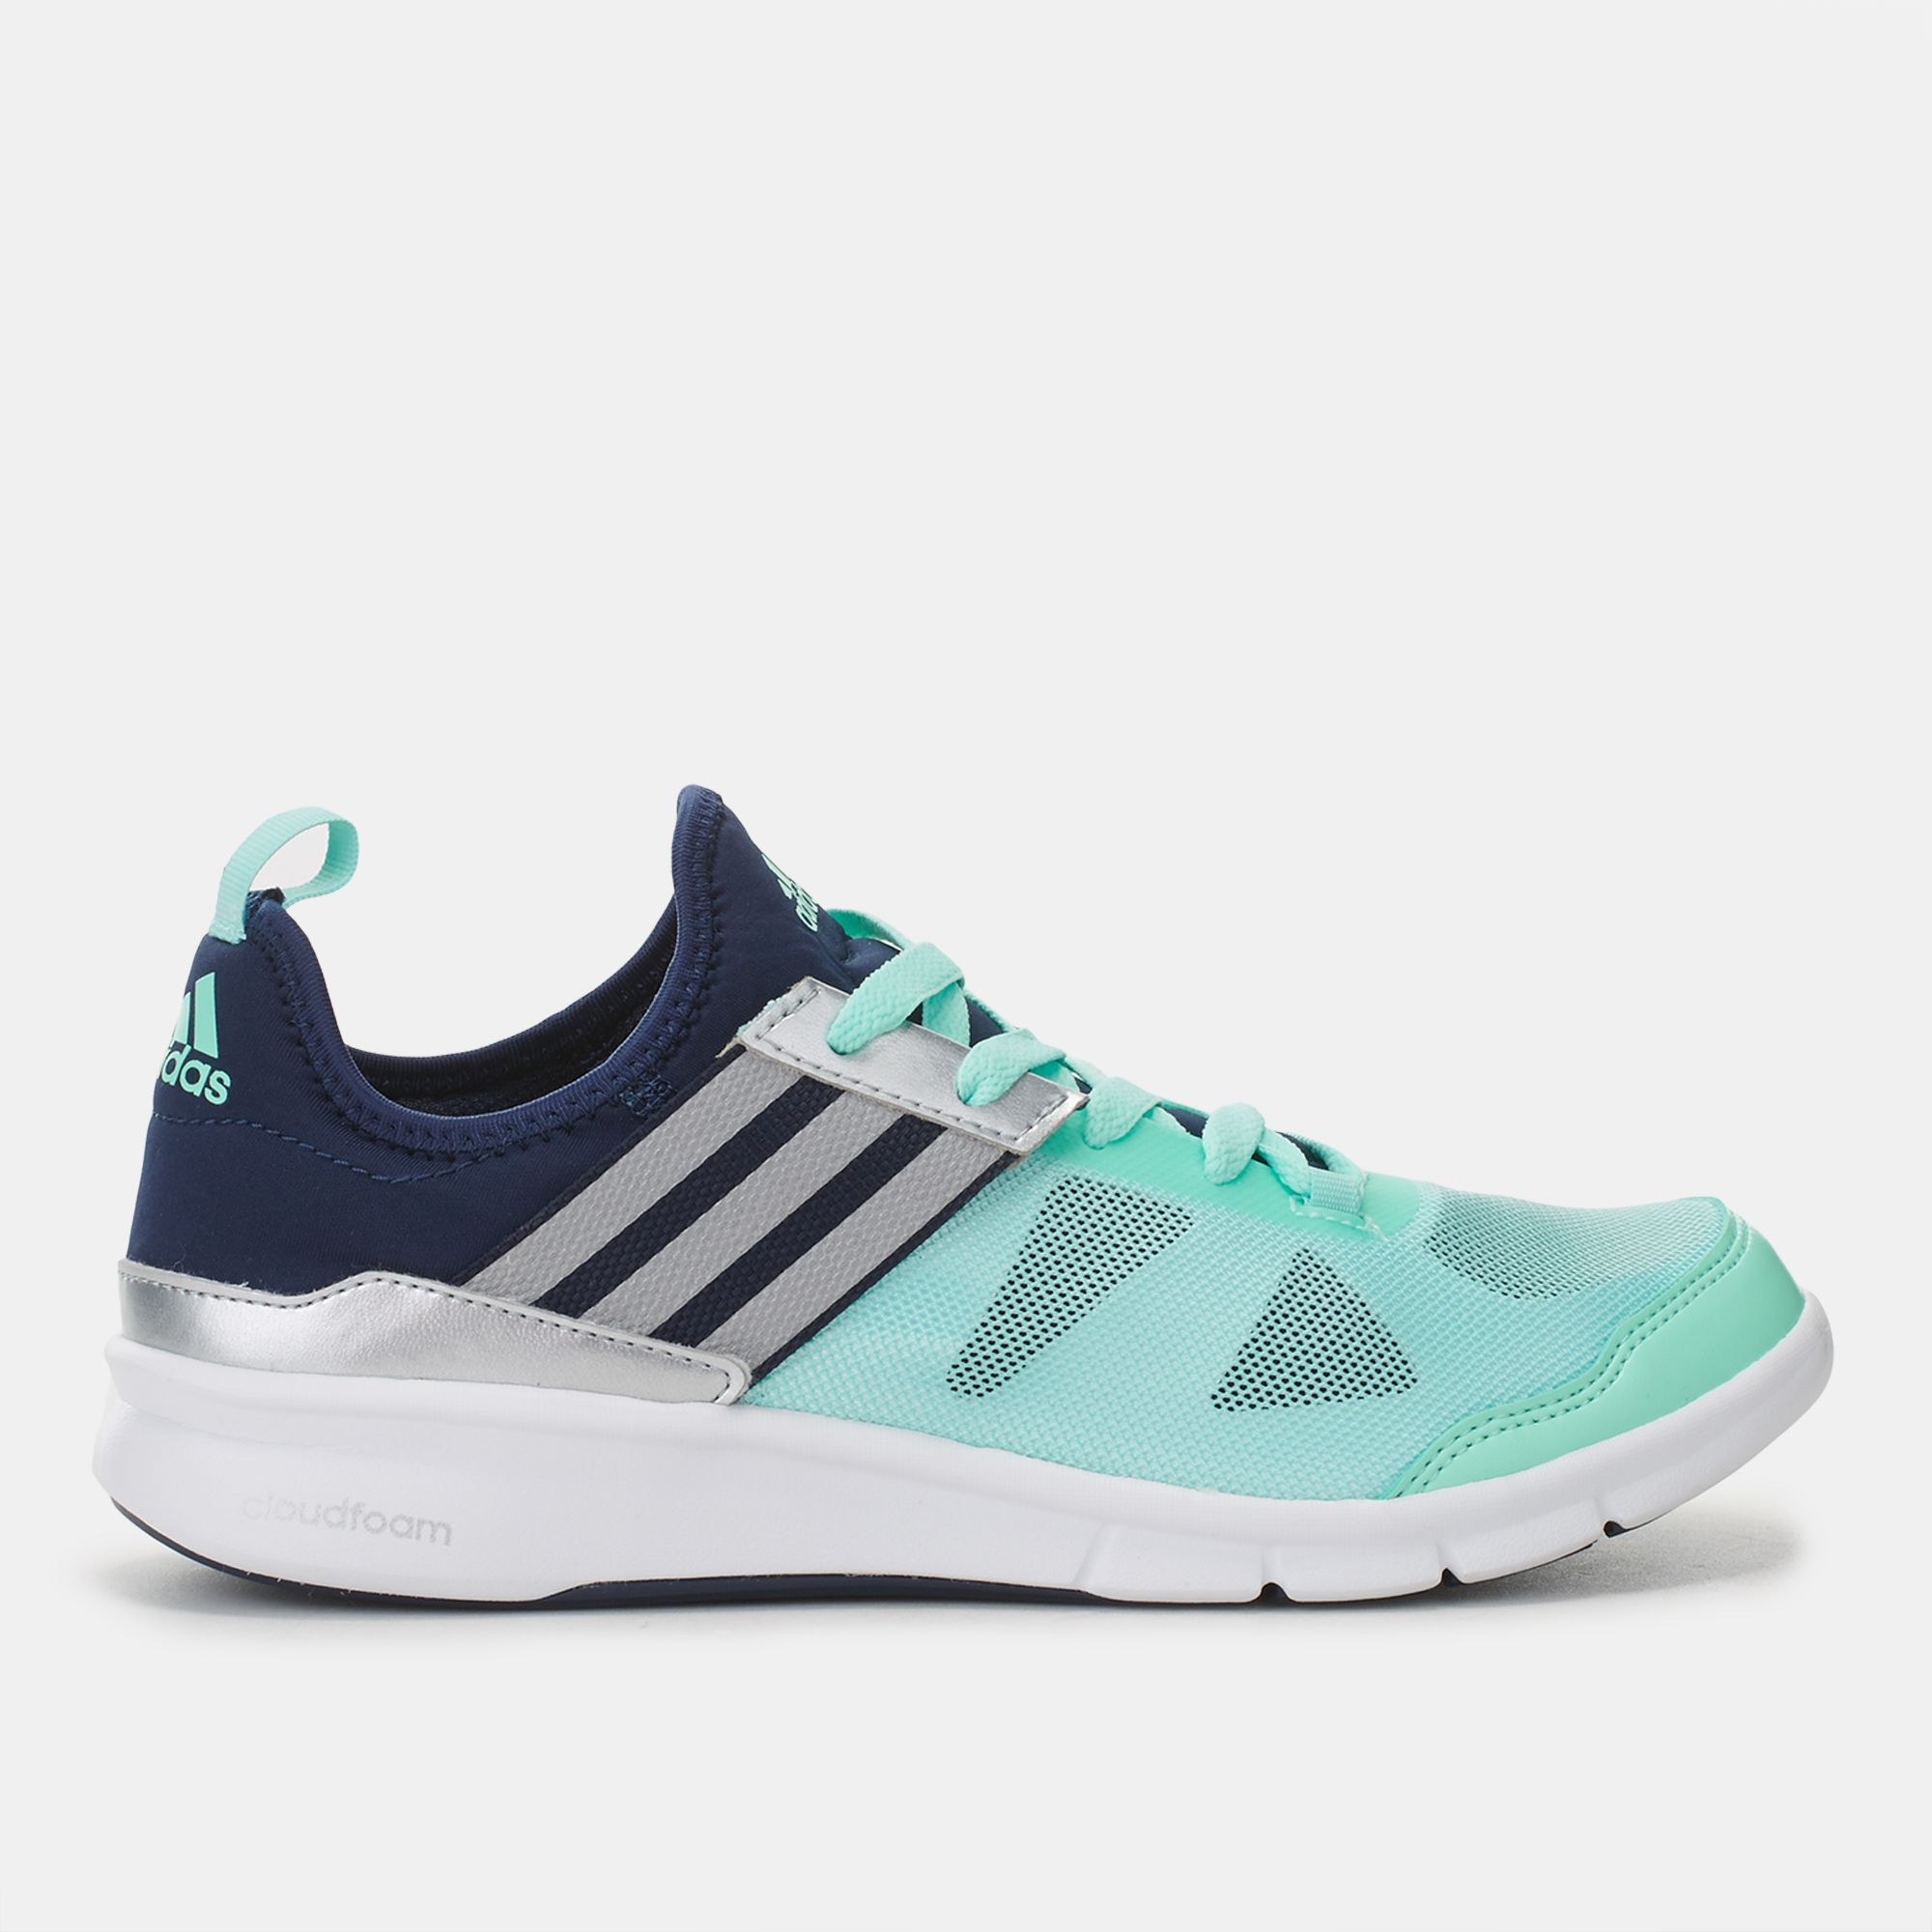 timeless design c2679 59c8e adidas Niya Cloudfoam Shoe